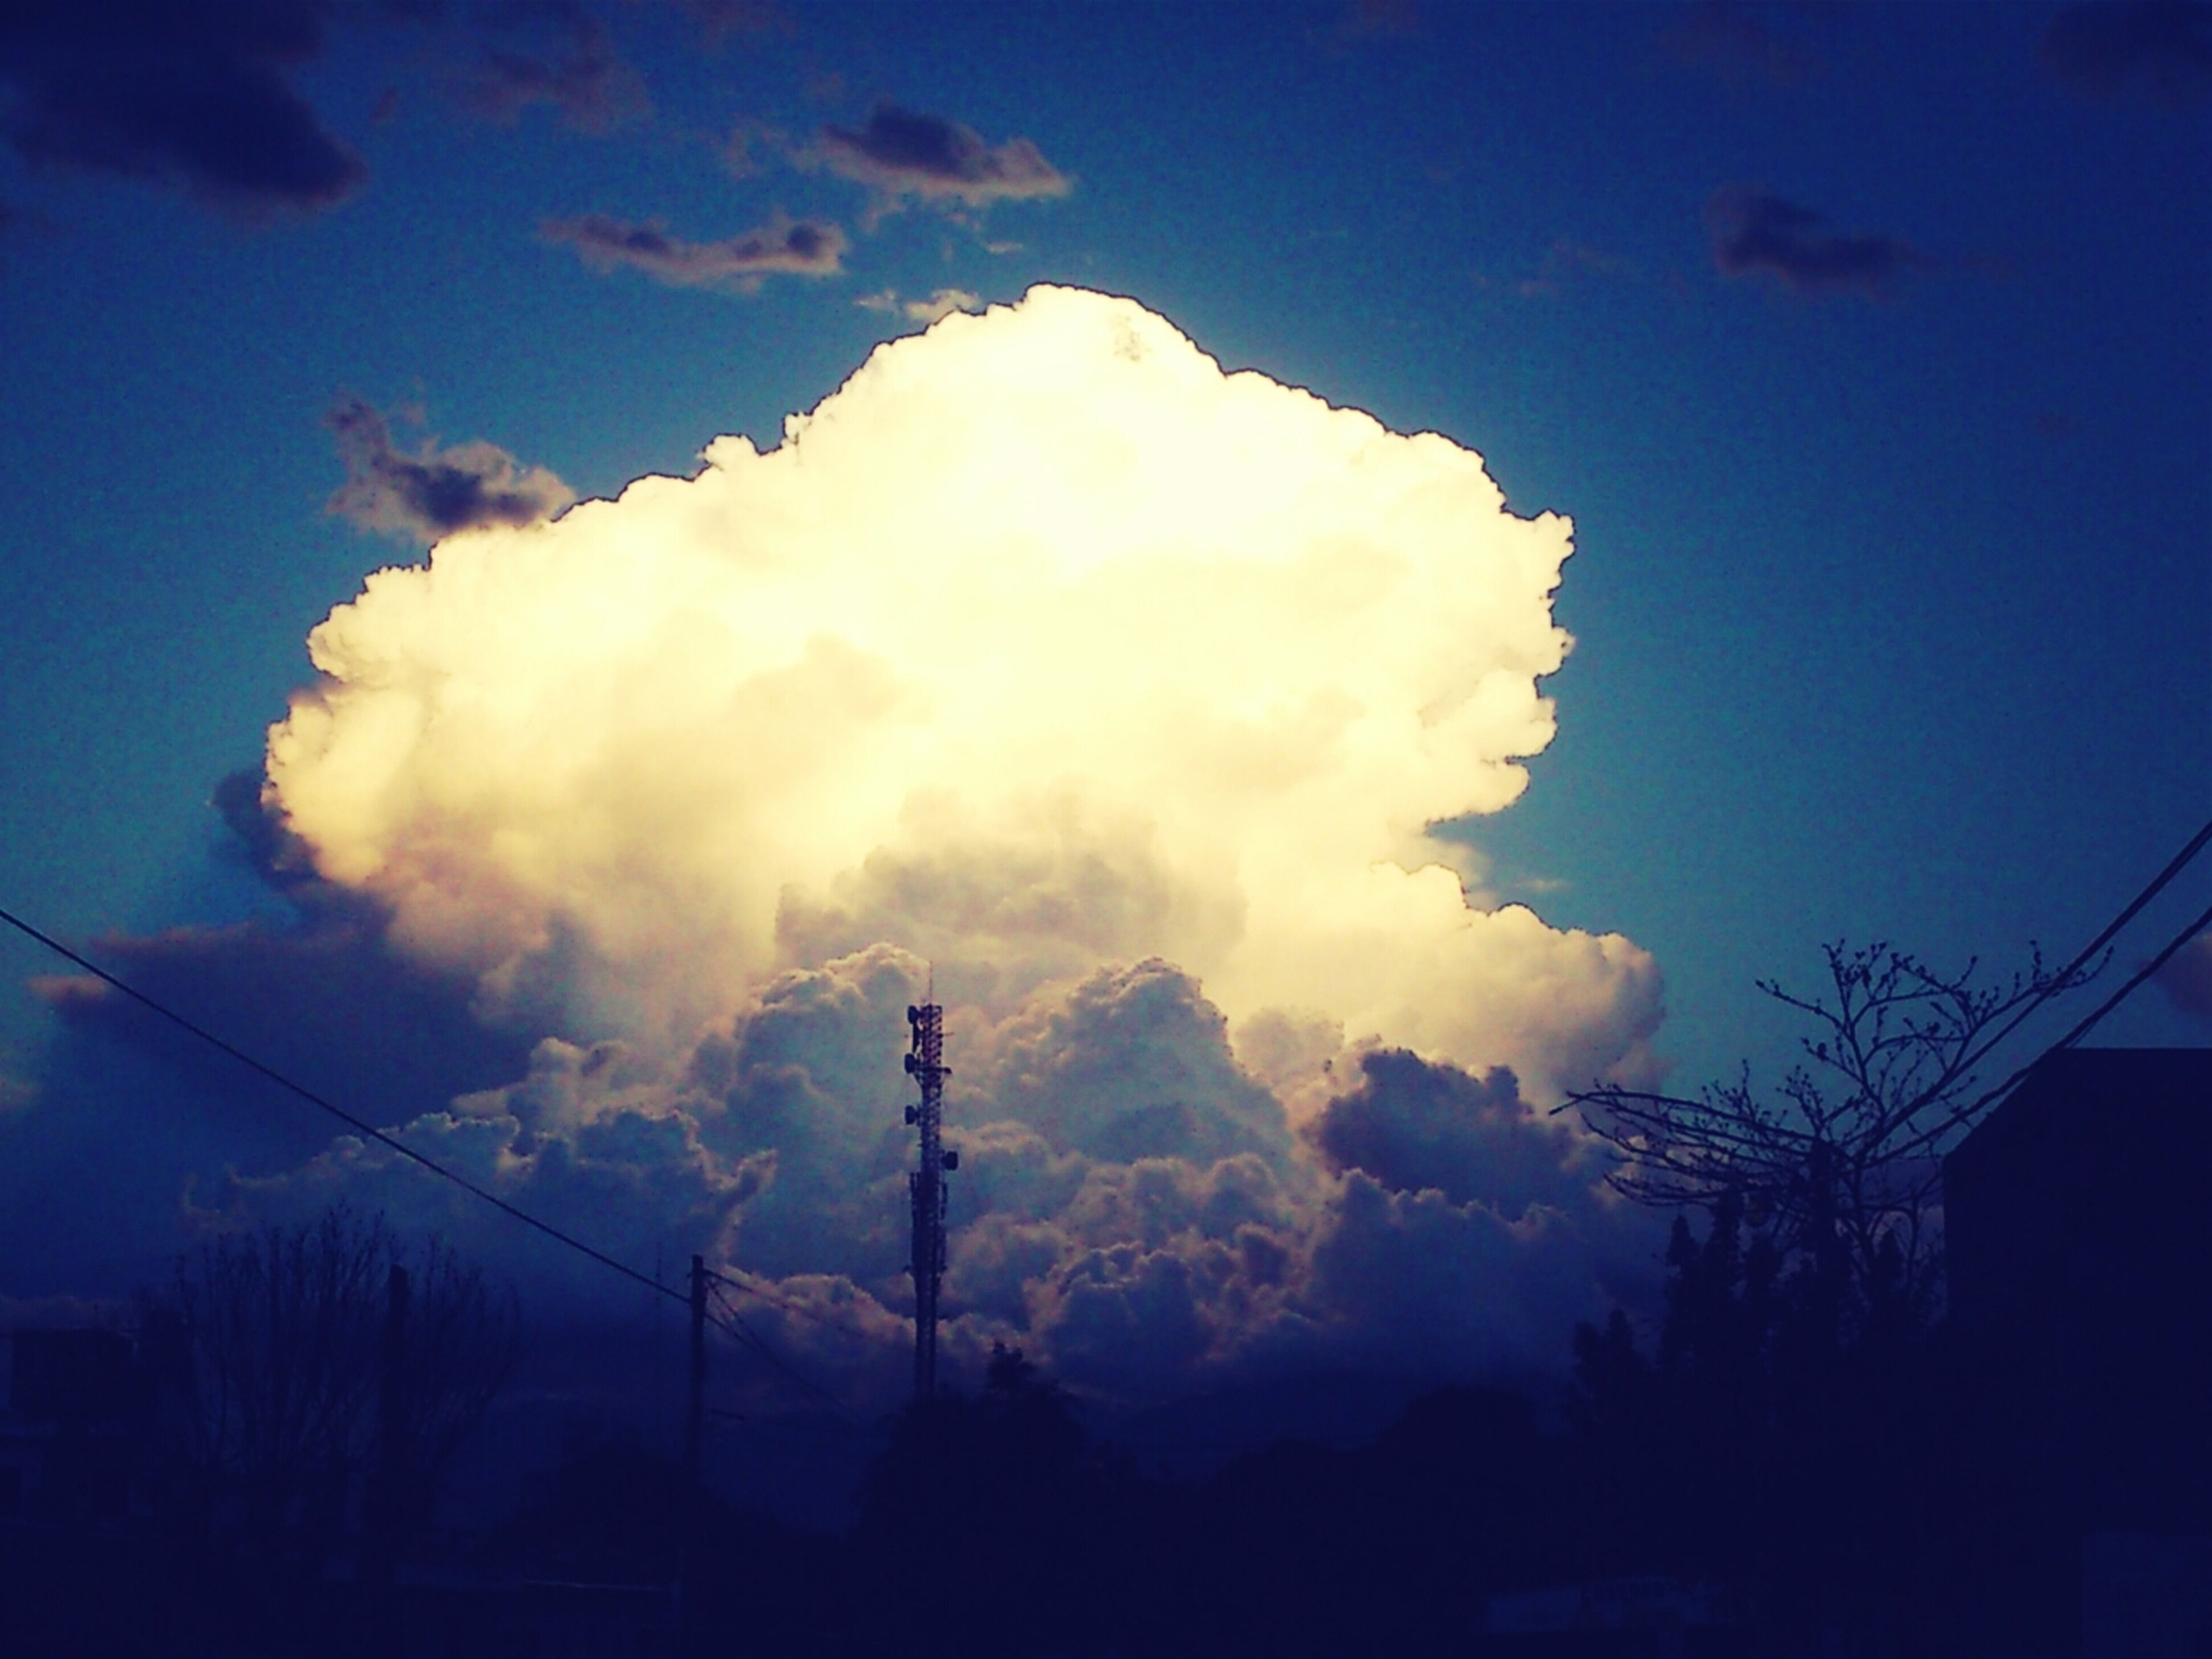 sky, low angle view, cloud - sky, silhouette, electricity, power line, electricity pylon, cloudy, power supply, cloud, nature, technology, built structure, dusk, weather, lighting equipment, cable, fuel and power generation, street light, beauty in nature